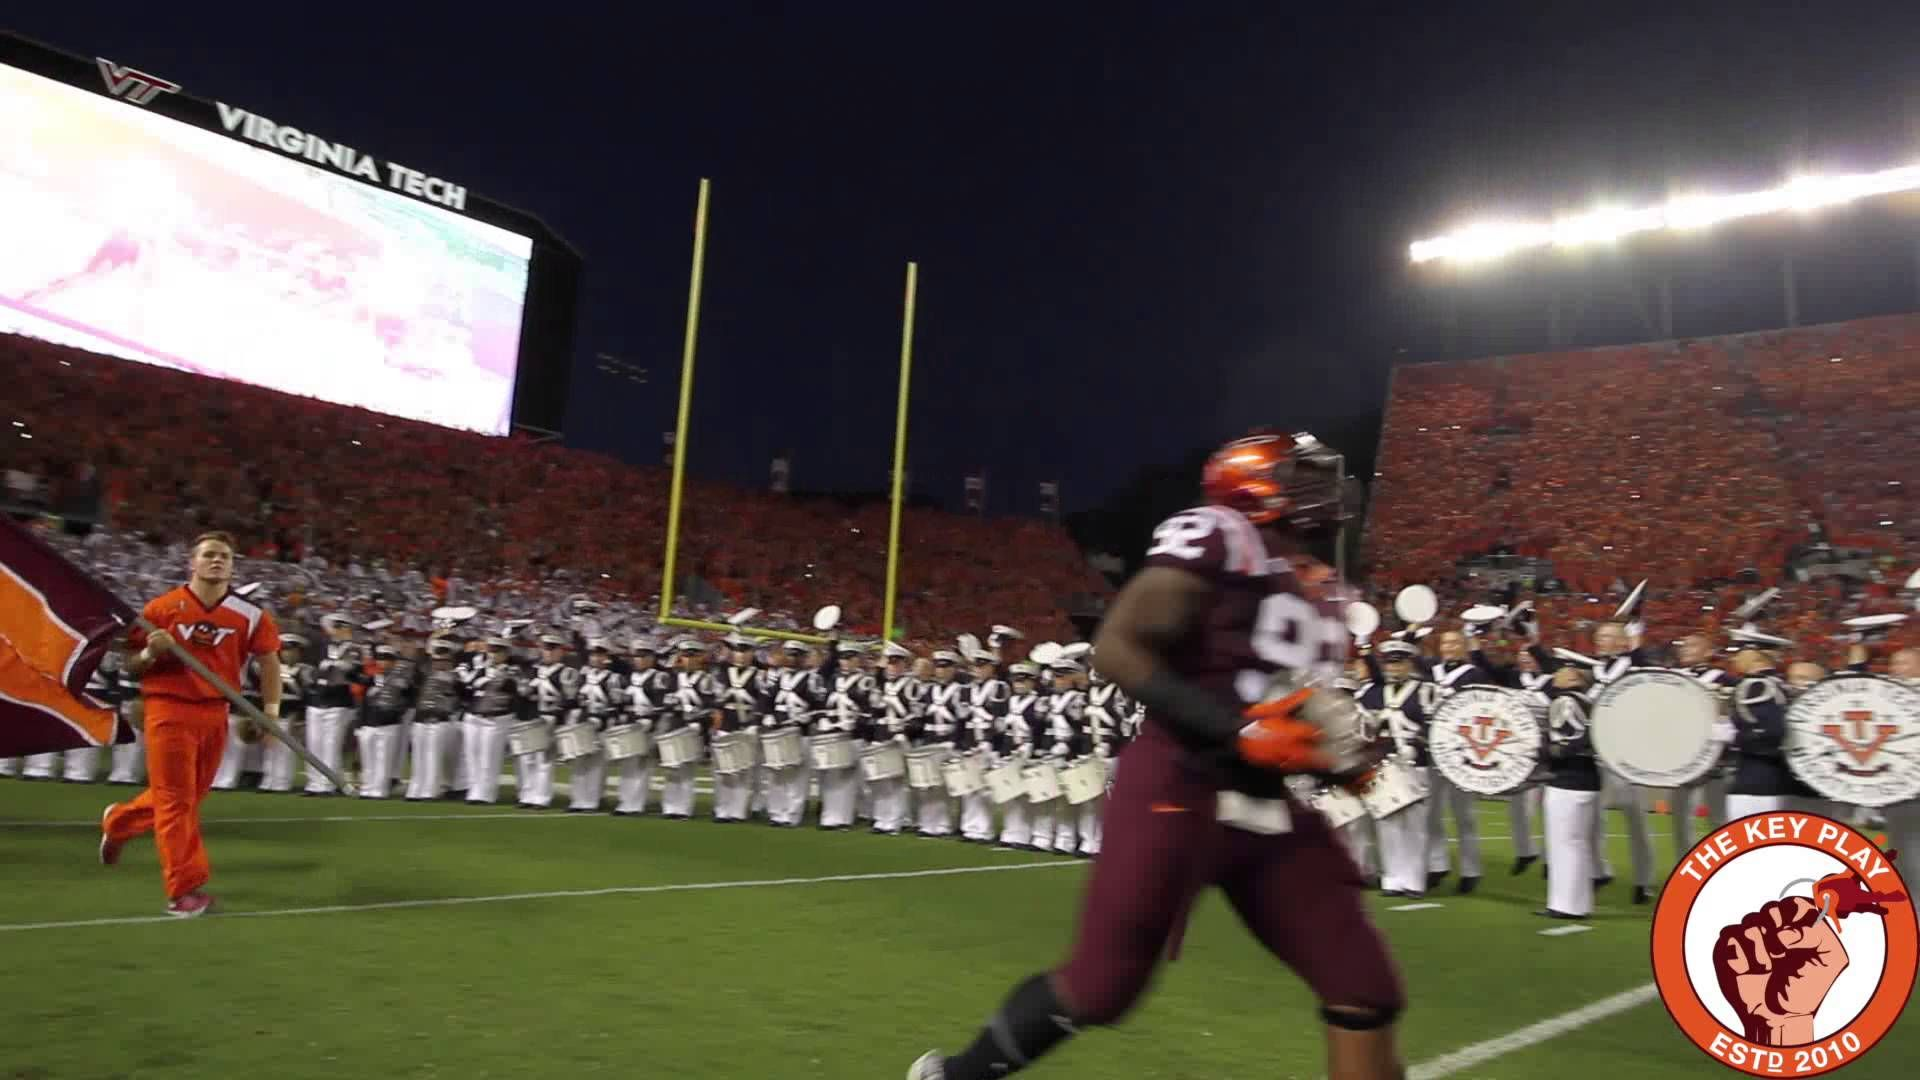 The Virginia Tech Hokies enter Lane Stadium to Enter